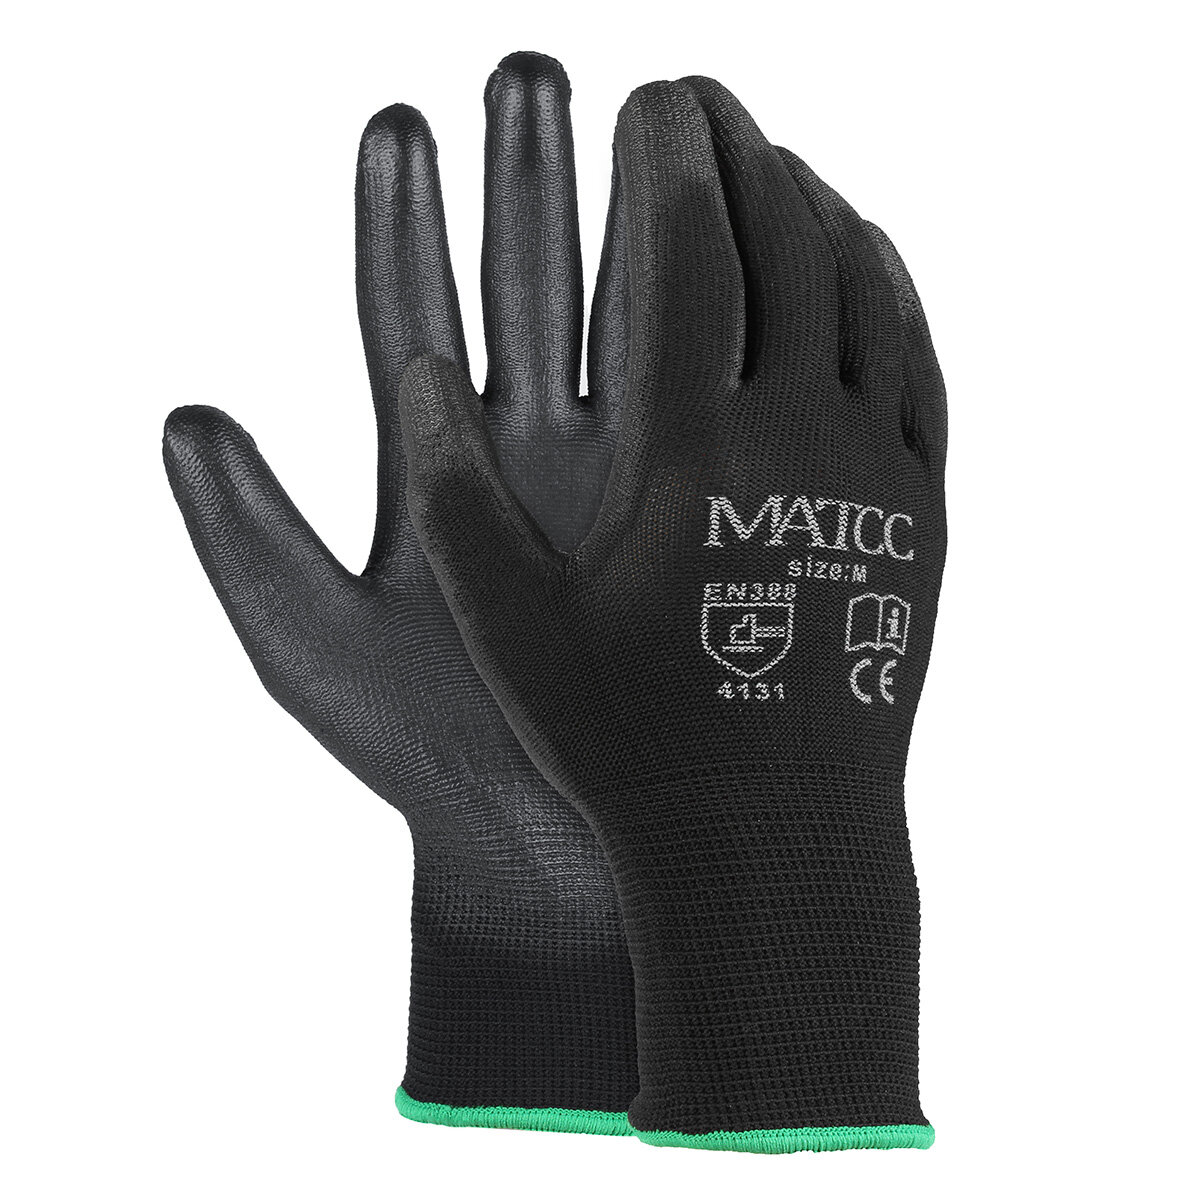 6e8a30d33e858 12pairs pu nitrile coated safety work gloves garden builders grip ...